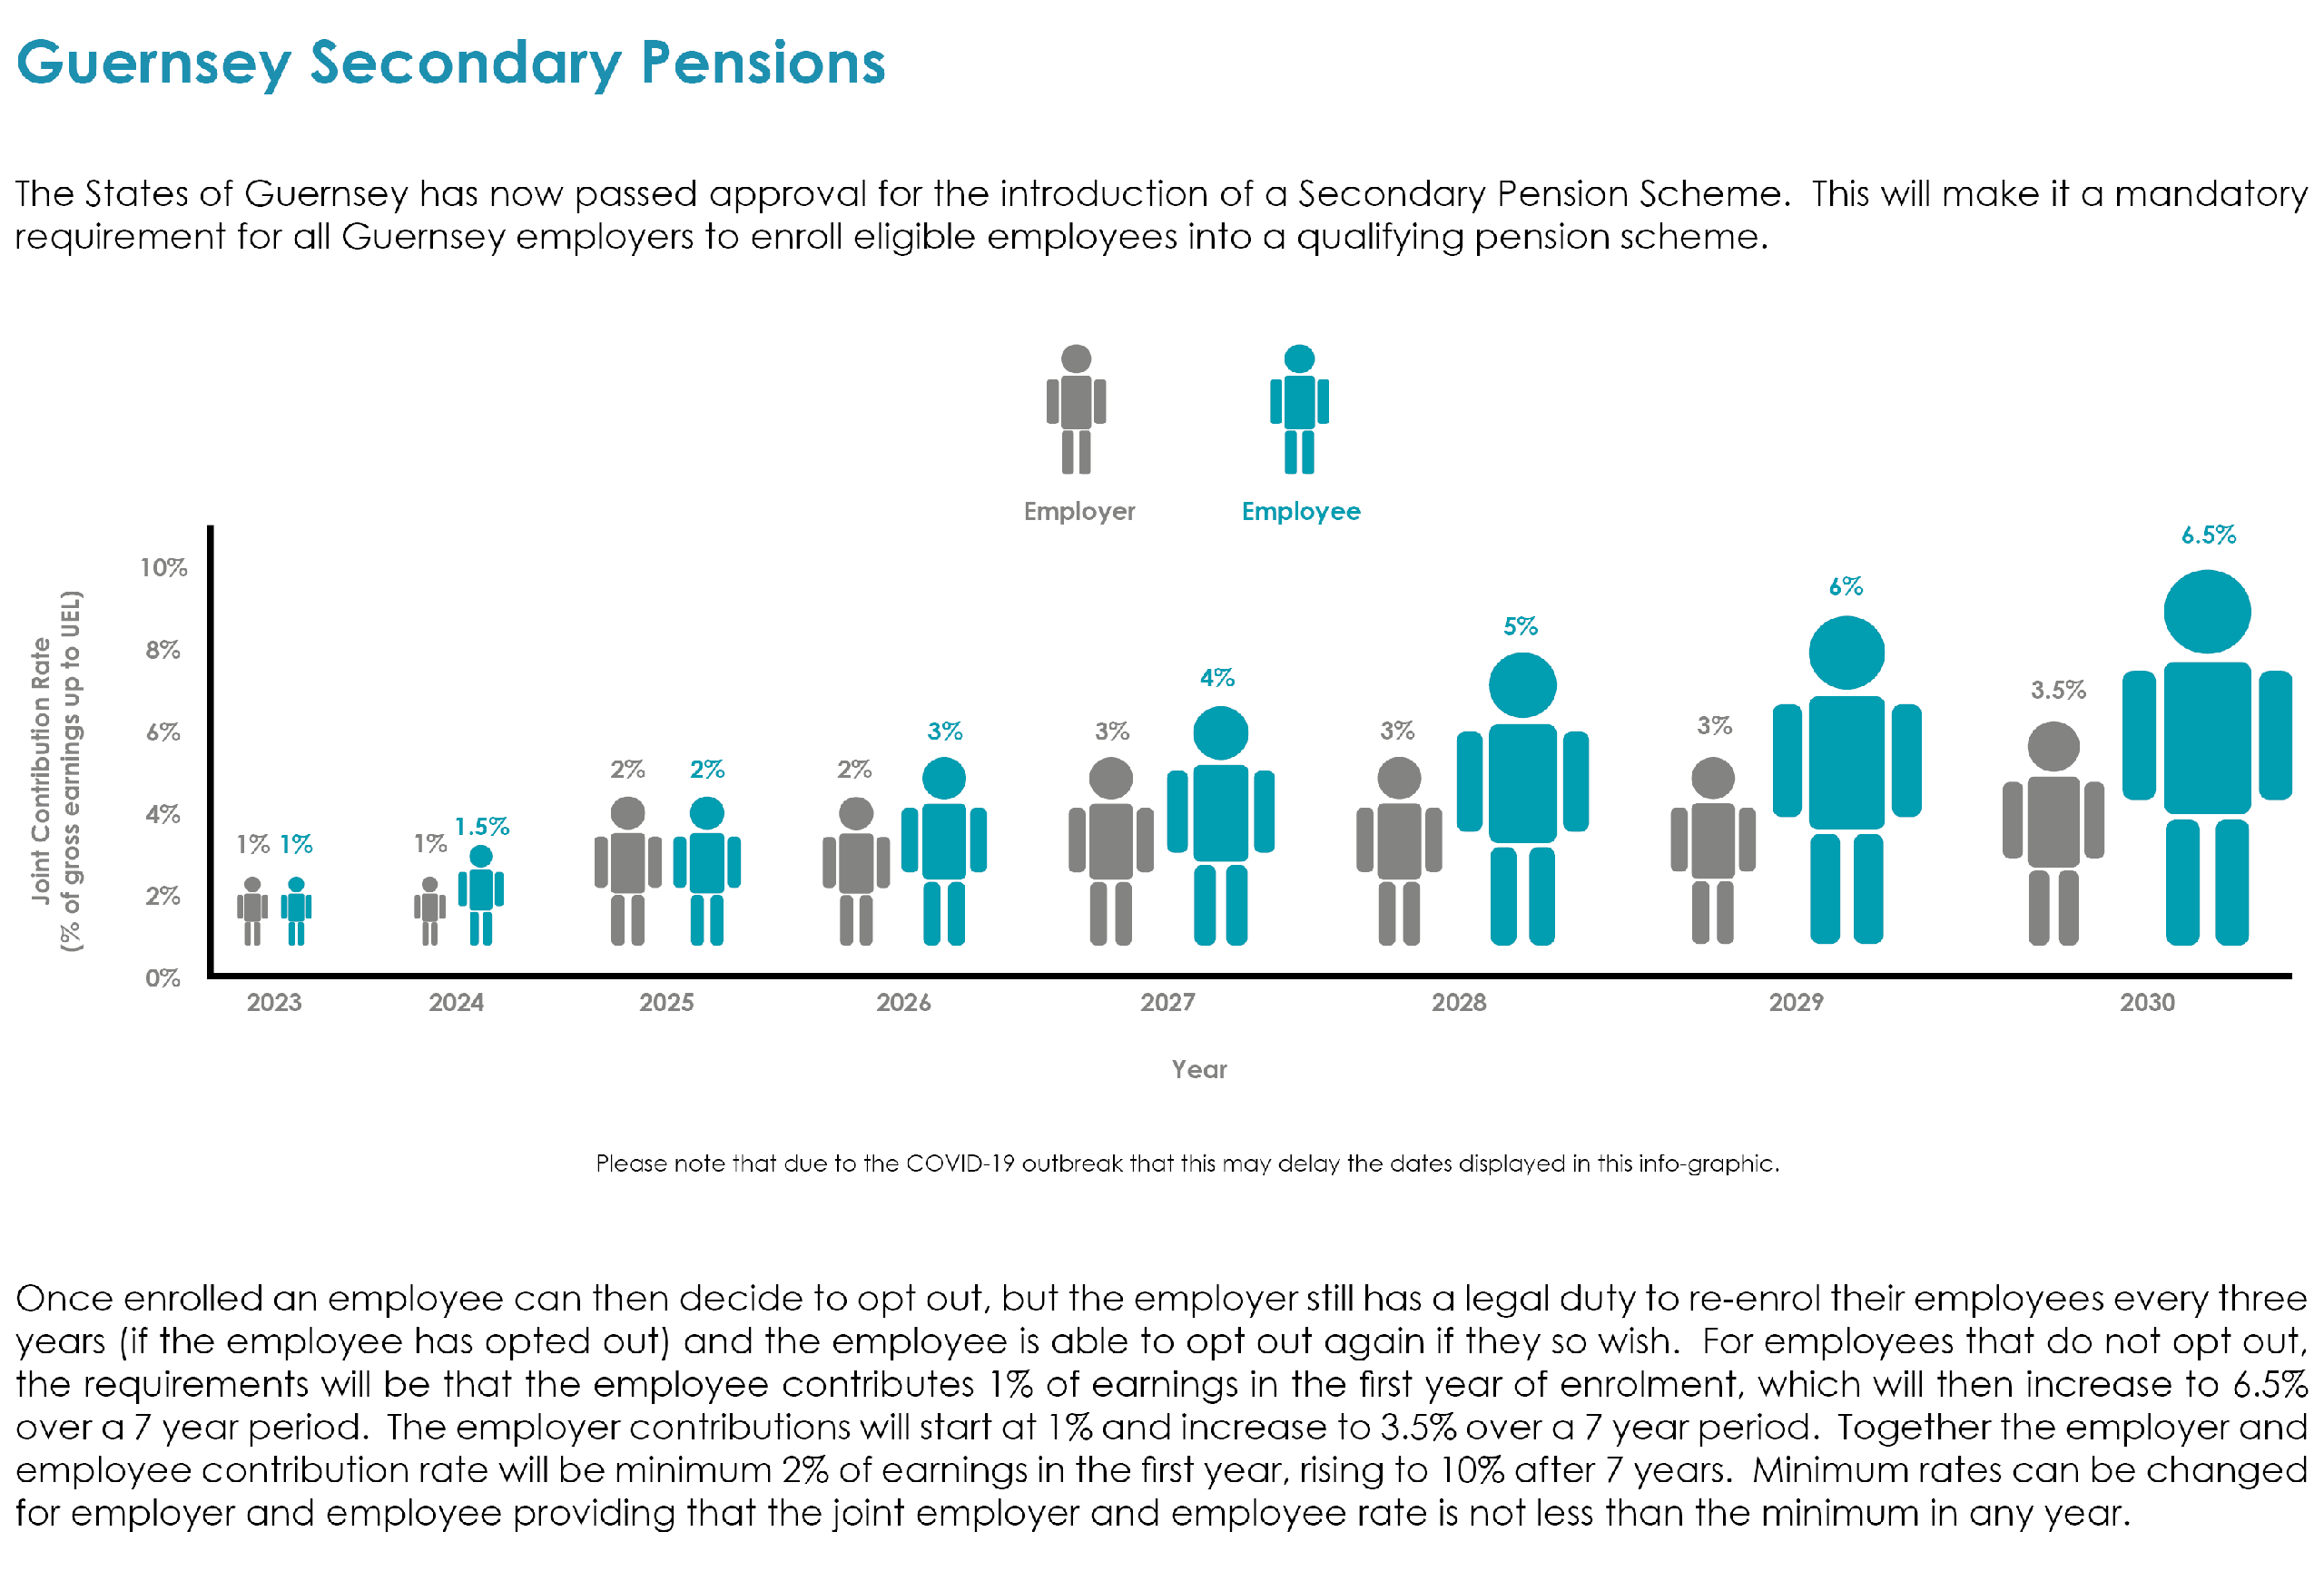 The States of Guernsey has now passed approval for the introduction of a Secondary Pension Scheme. This will make it a mandatory requirement for all Guernsey employers to enroll eligible employees into a qualifying pension scheme. Once enrolled an employee can then decide to opt out, but the employer still has a legal duty to re-enroll their employees every three years (if the employee has opted out) and the employee is able to opt out again if they so wish. For employees that do not opt out, the requirements will be that the employee contributes 1% of earnings in the first year of enrolment, which will then increase to 6.5% over a 7 year period. The employer contributions will start at 1% and increase to 3.5% over a 7 year period. Together the employer and employee contribution rate will be minimum 2% of earnings in the first year, rising to 10% after 7 years. Minimum rates can be changed for employer and employee providing that the joint employer and employee rate is not less than the minimum in any year.